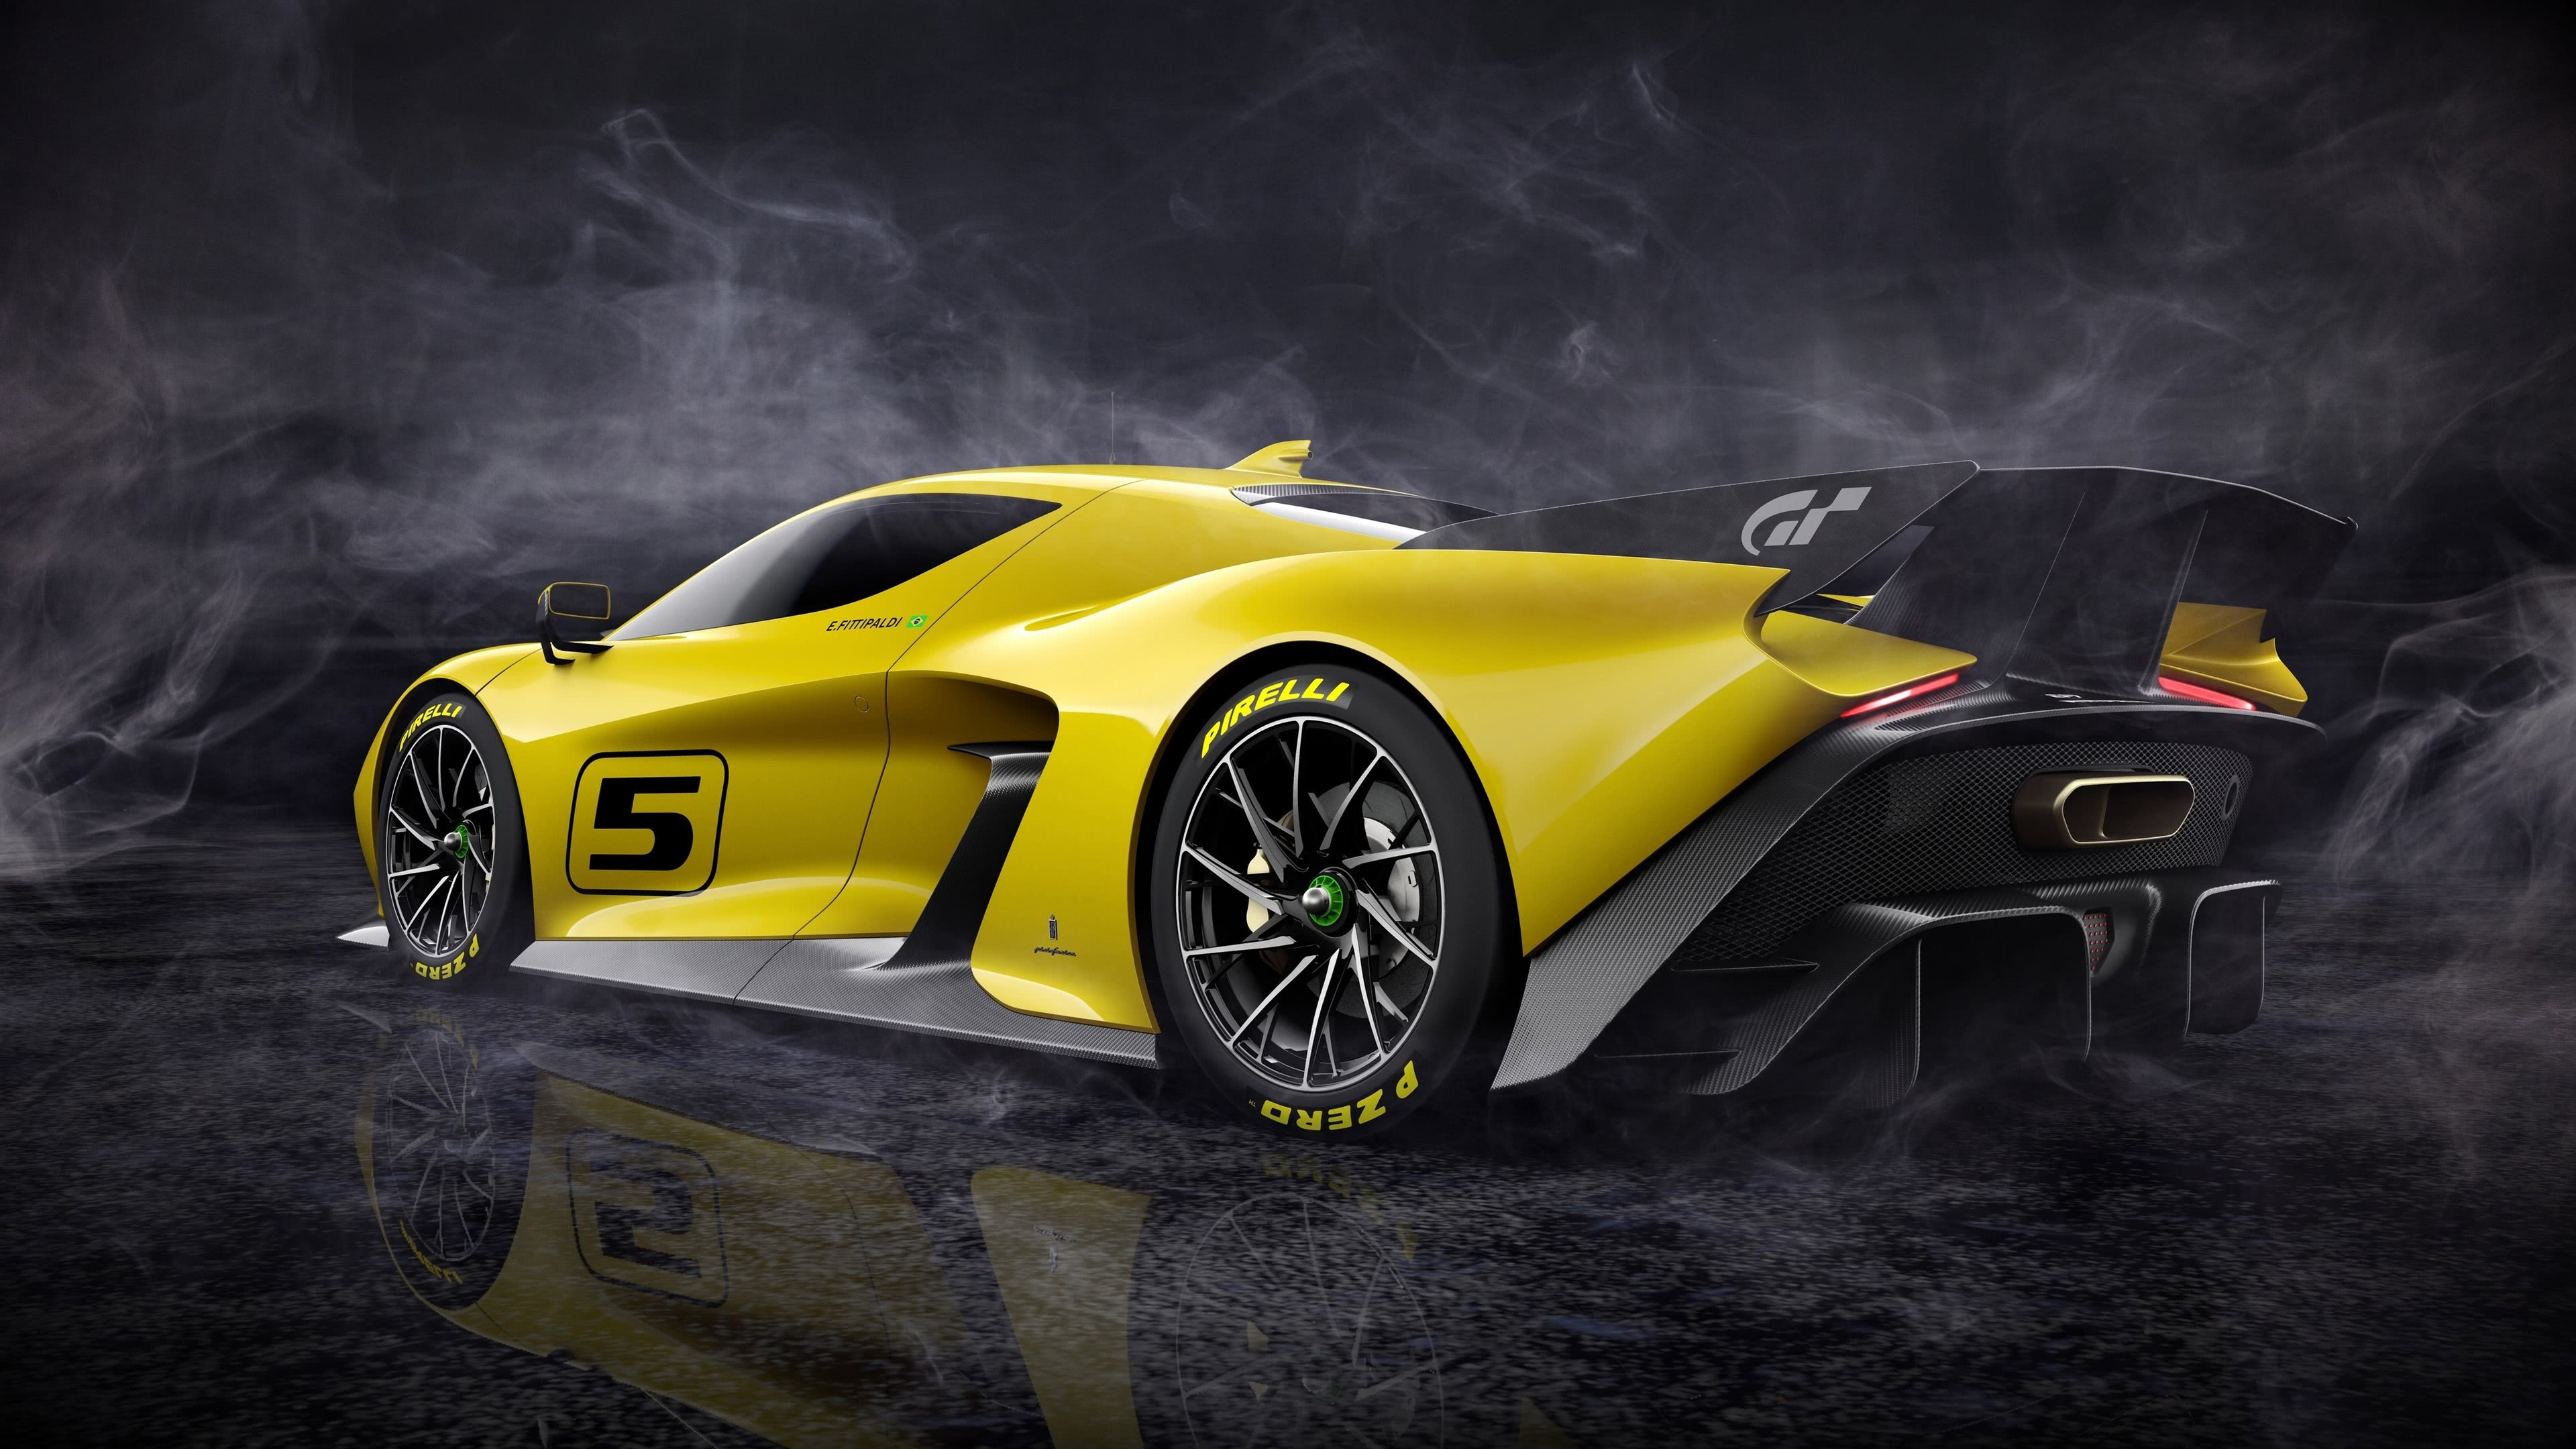 fittipaldi ef7 vision gran turismo rear uhd 4k wallpaper